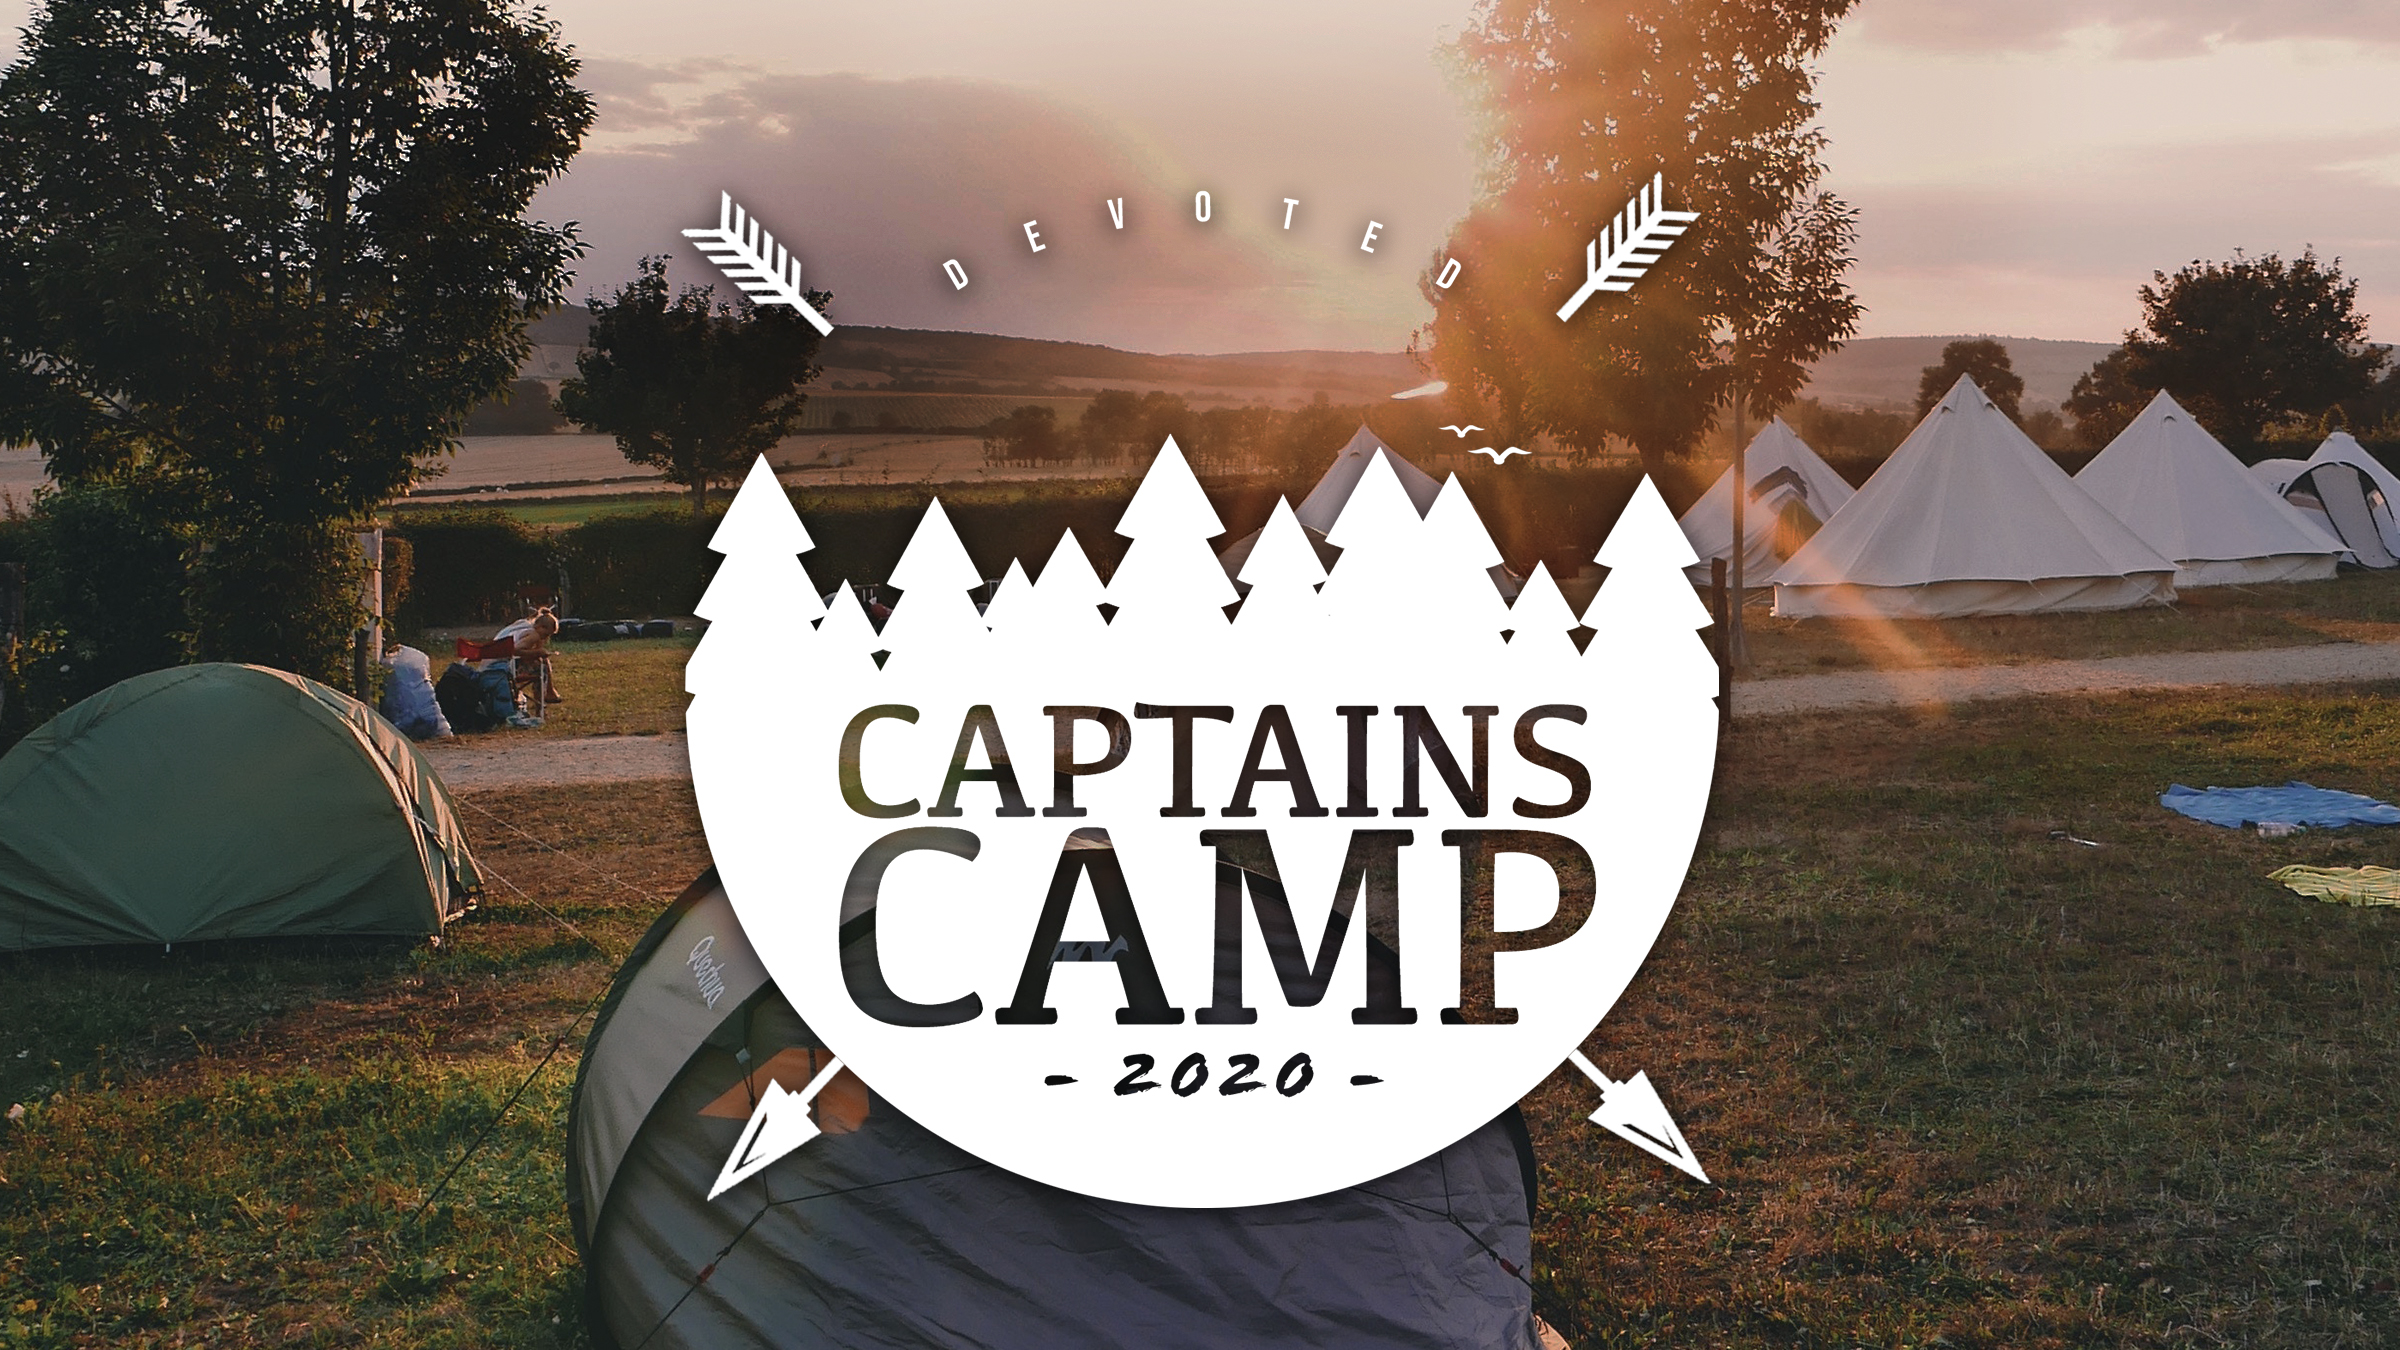 Captains Camp '20